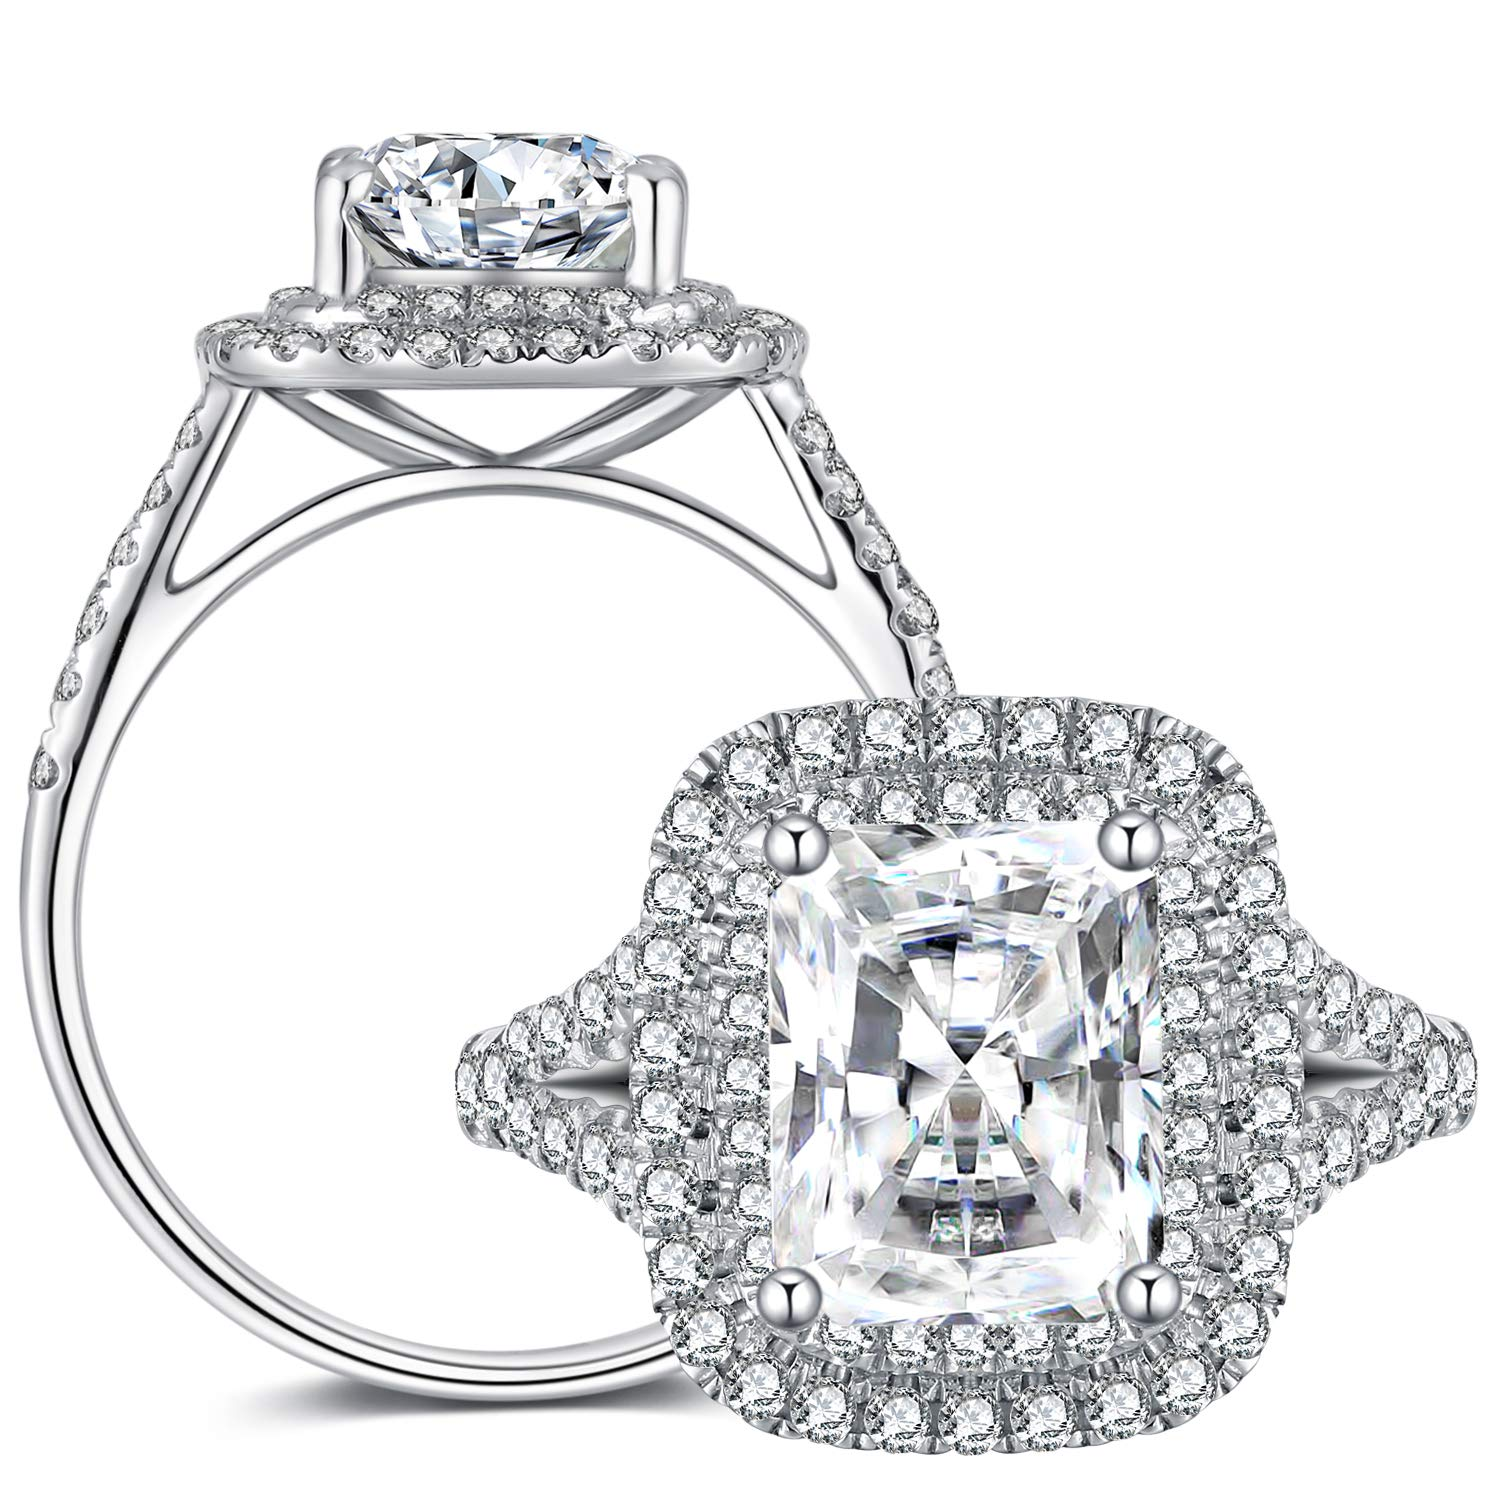 GEM DE LUXE 2ct Cushion Cut 2.3mm Width F-G Color Double Halo Solitare Moissanite Engagement Ring with Accents Platinum Plated Silver for Women